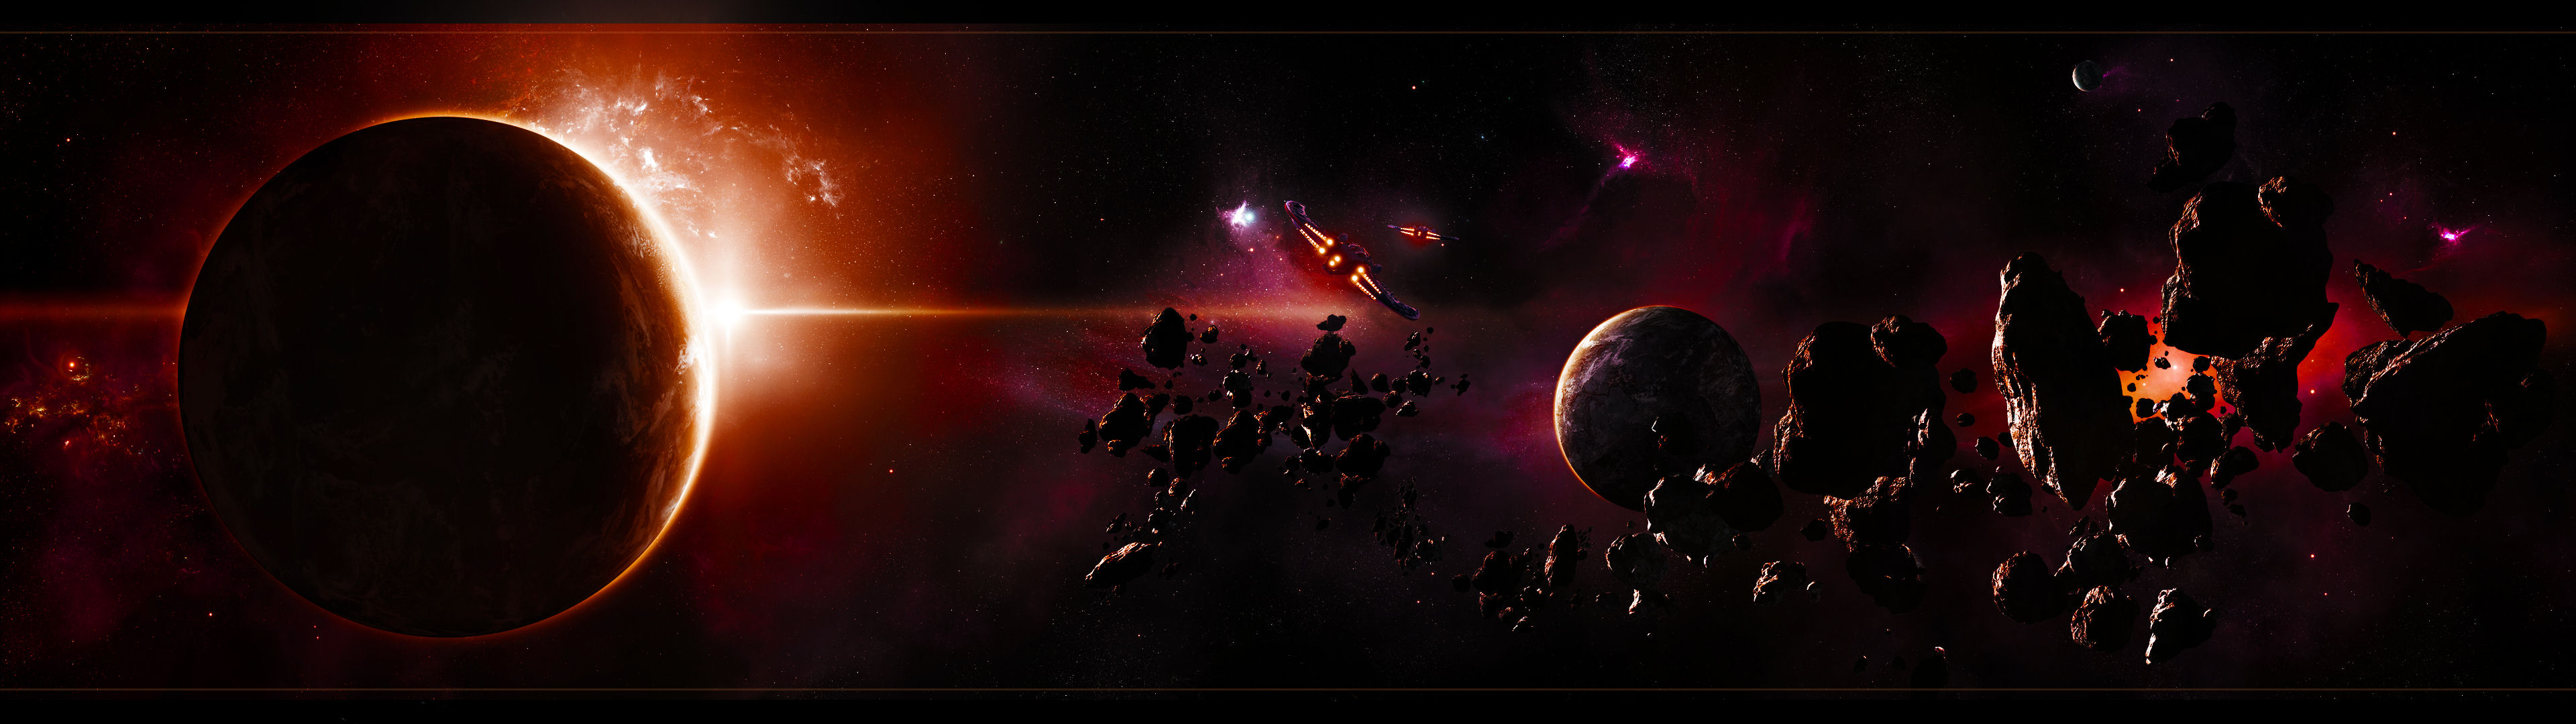 Background image 3840x1080 - Outer Space Planets 1077103